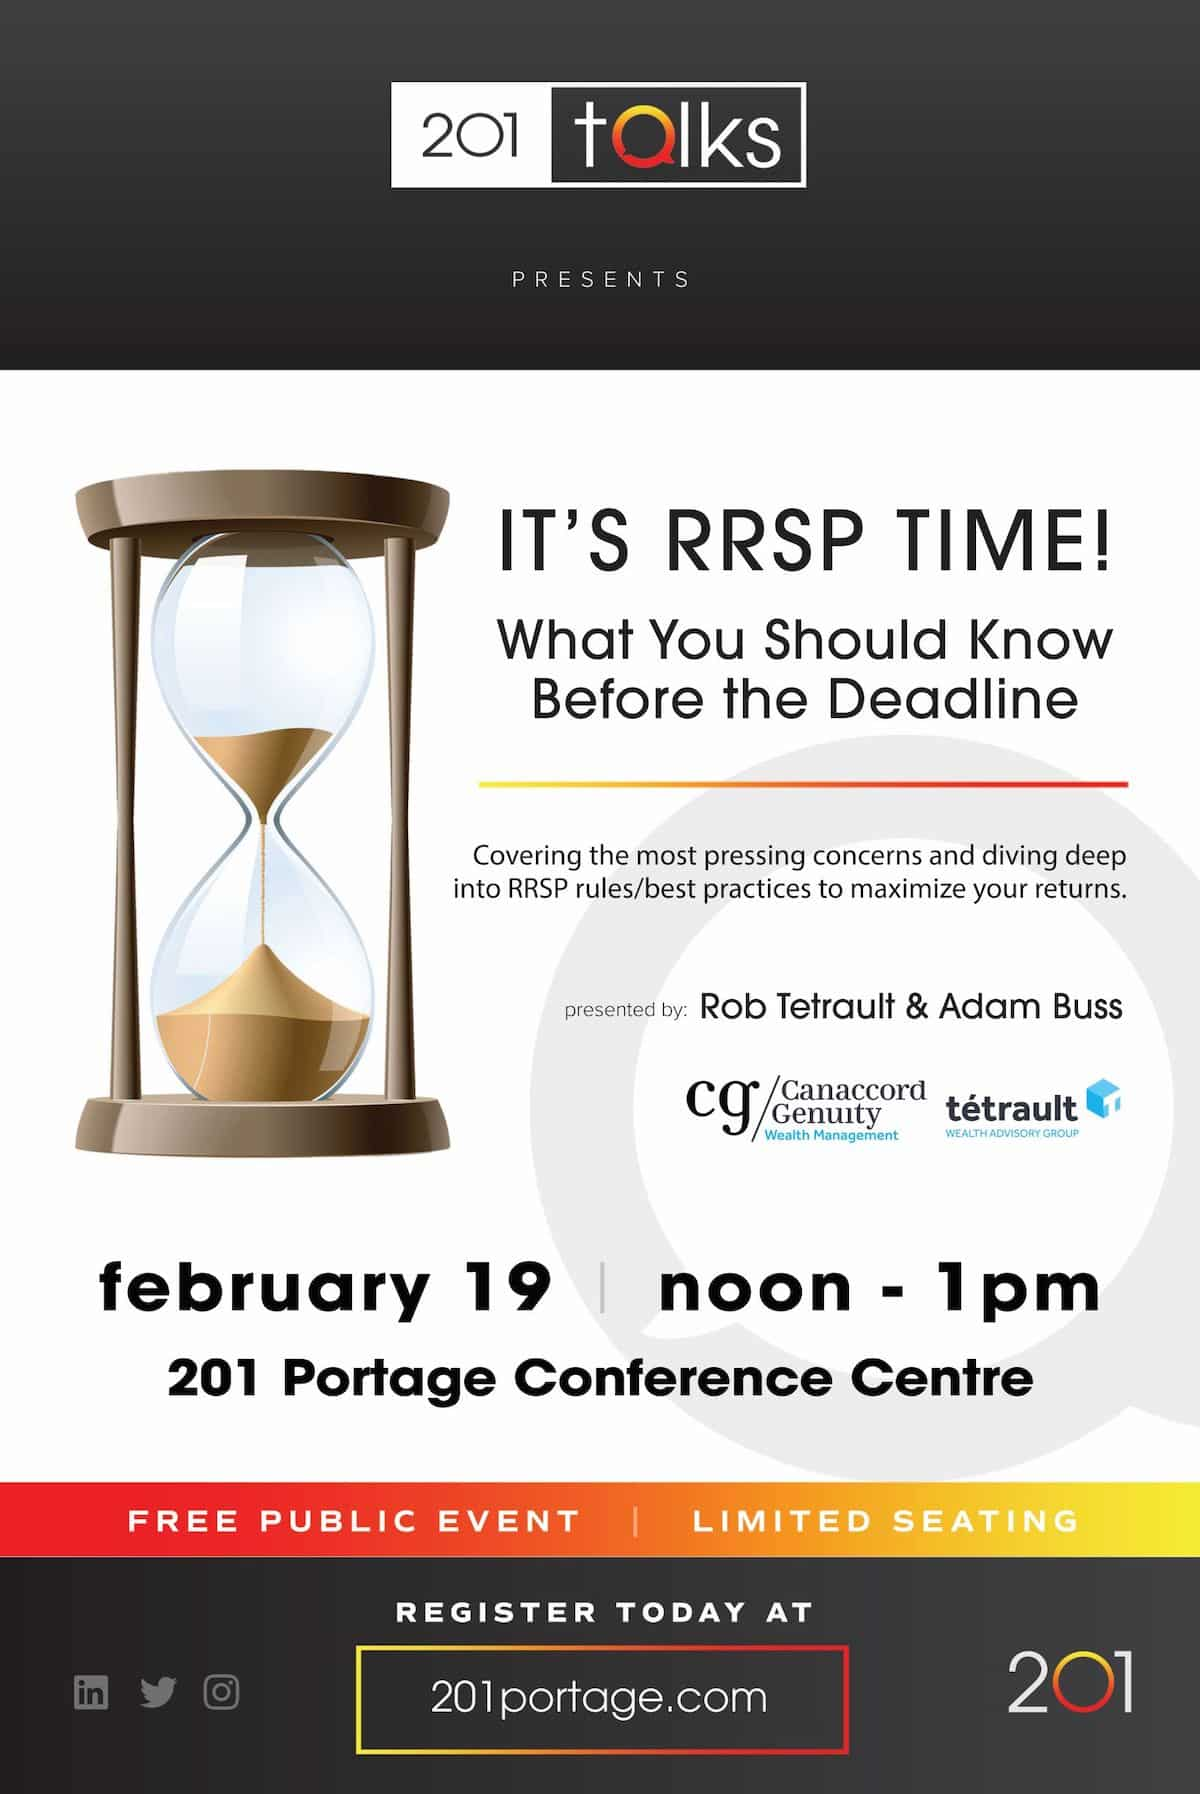 It's RRSP Time! What You Should Know Before The Deadline